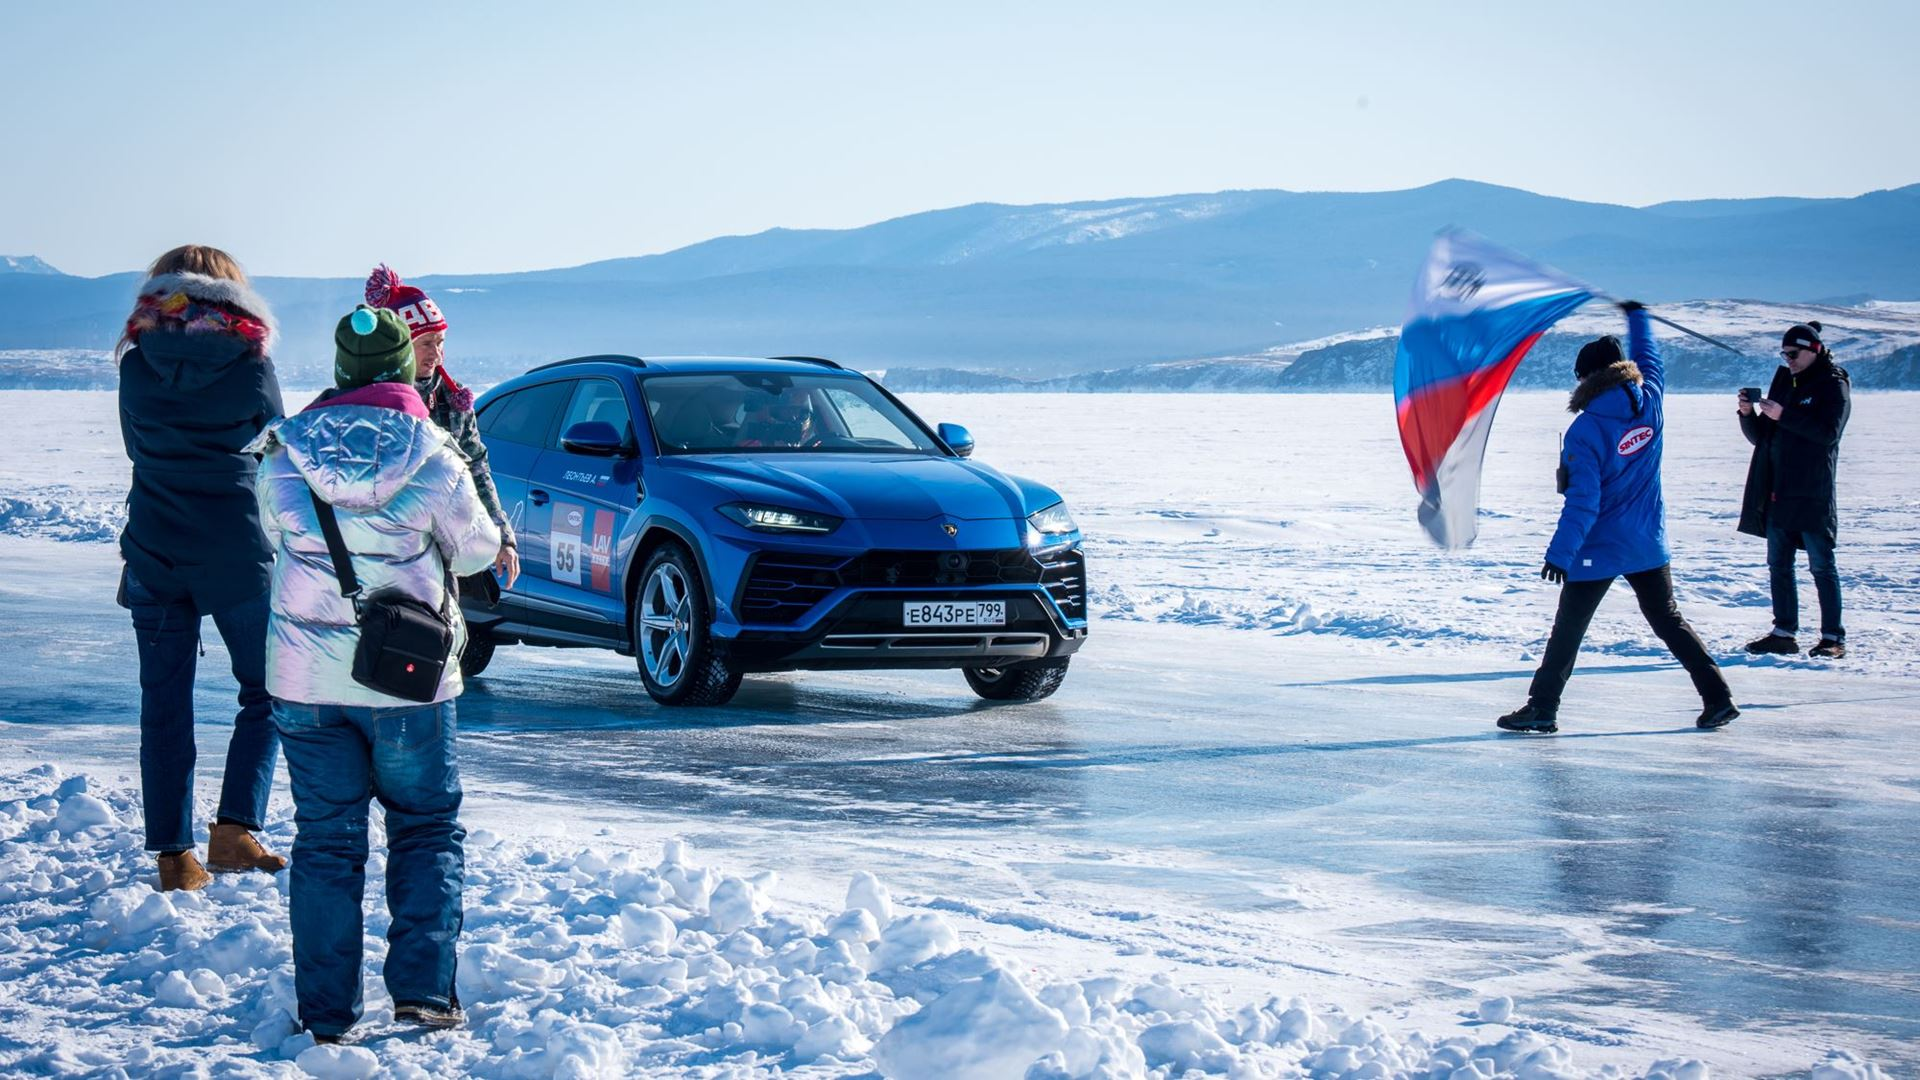 Lamborghini Urus sets high-speed record on the ice of Lake Baikal - Image 3